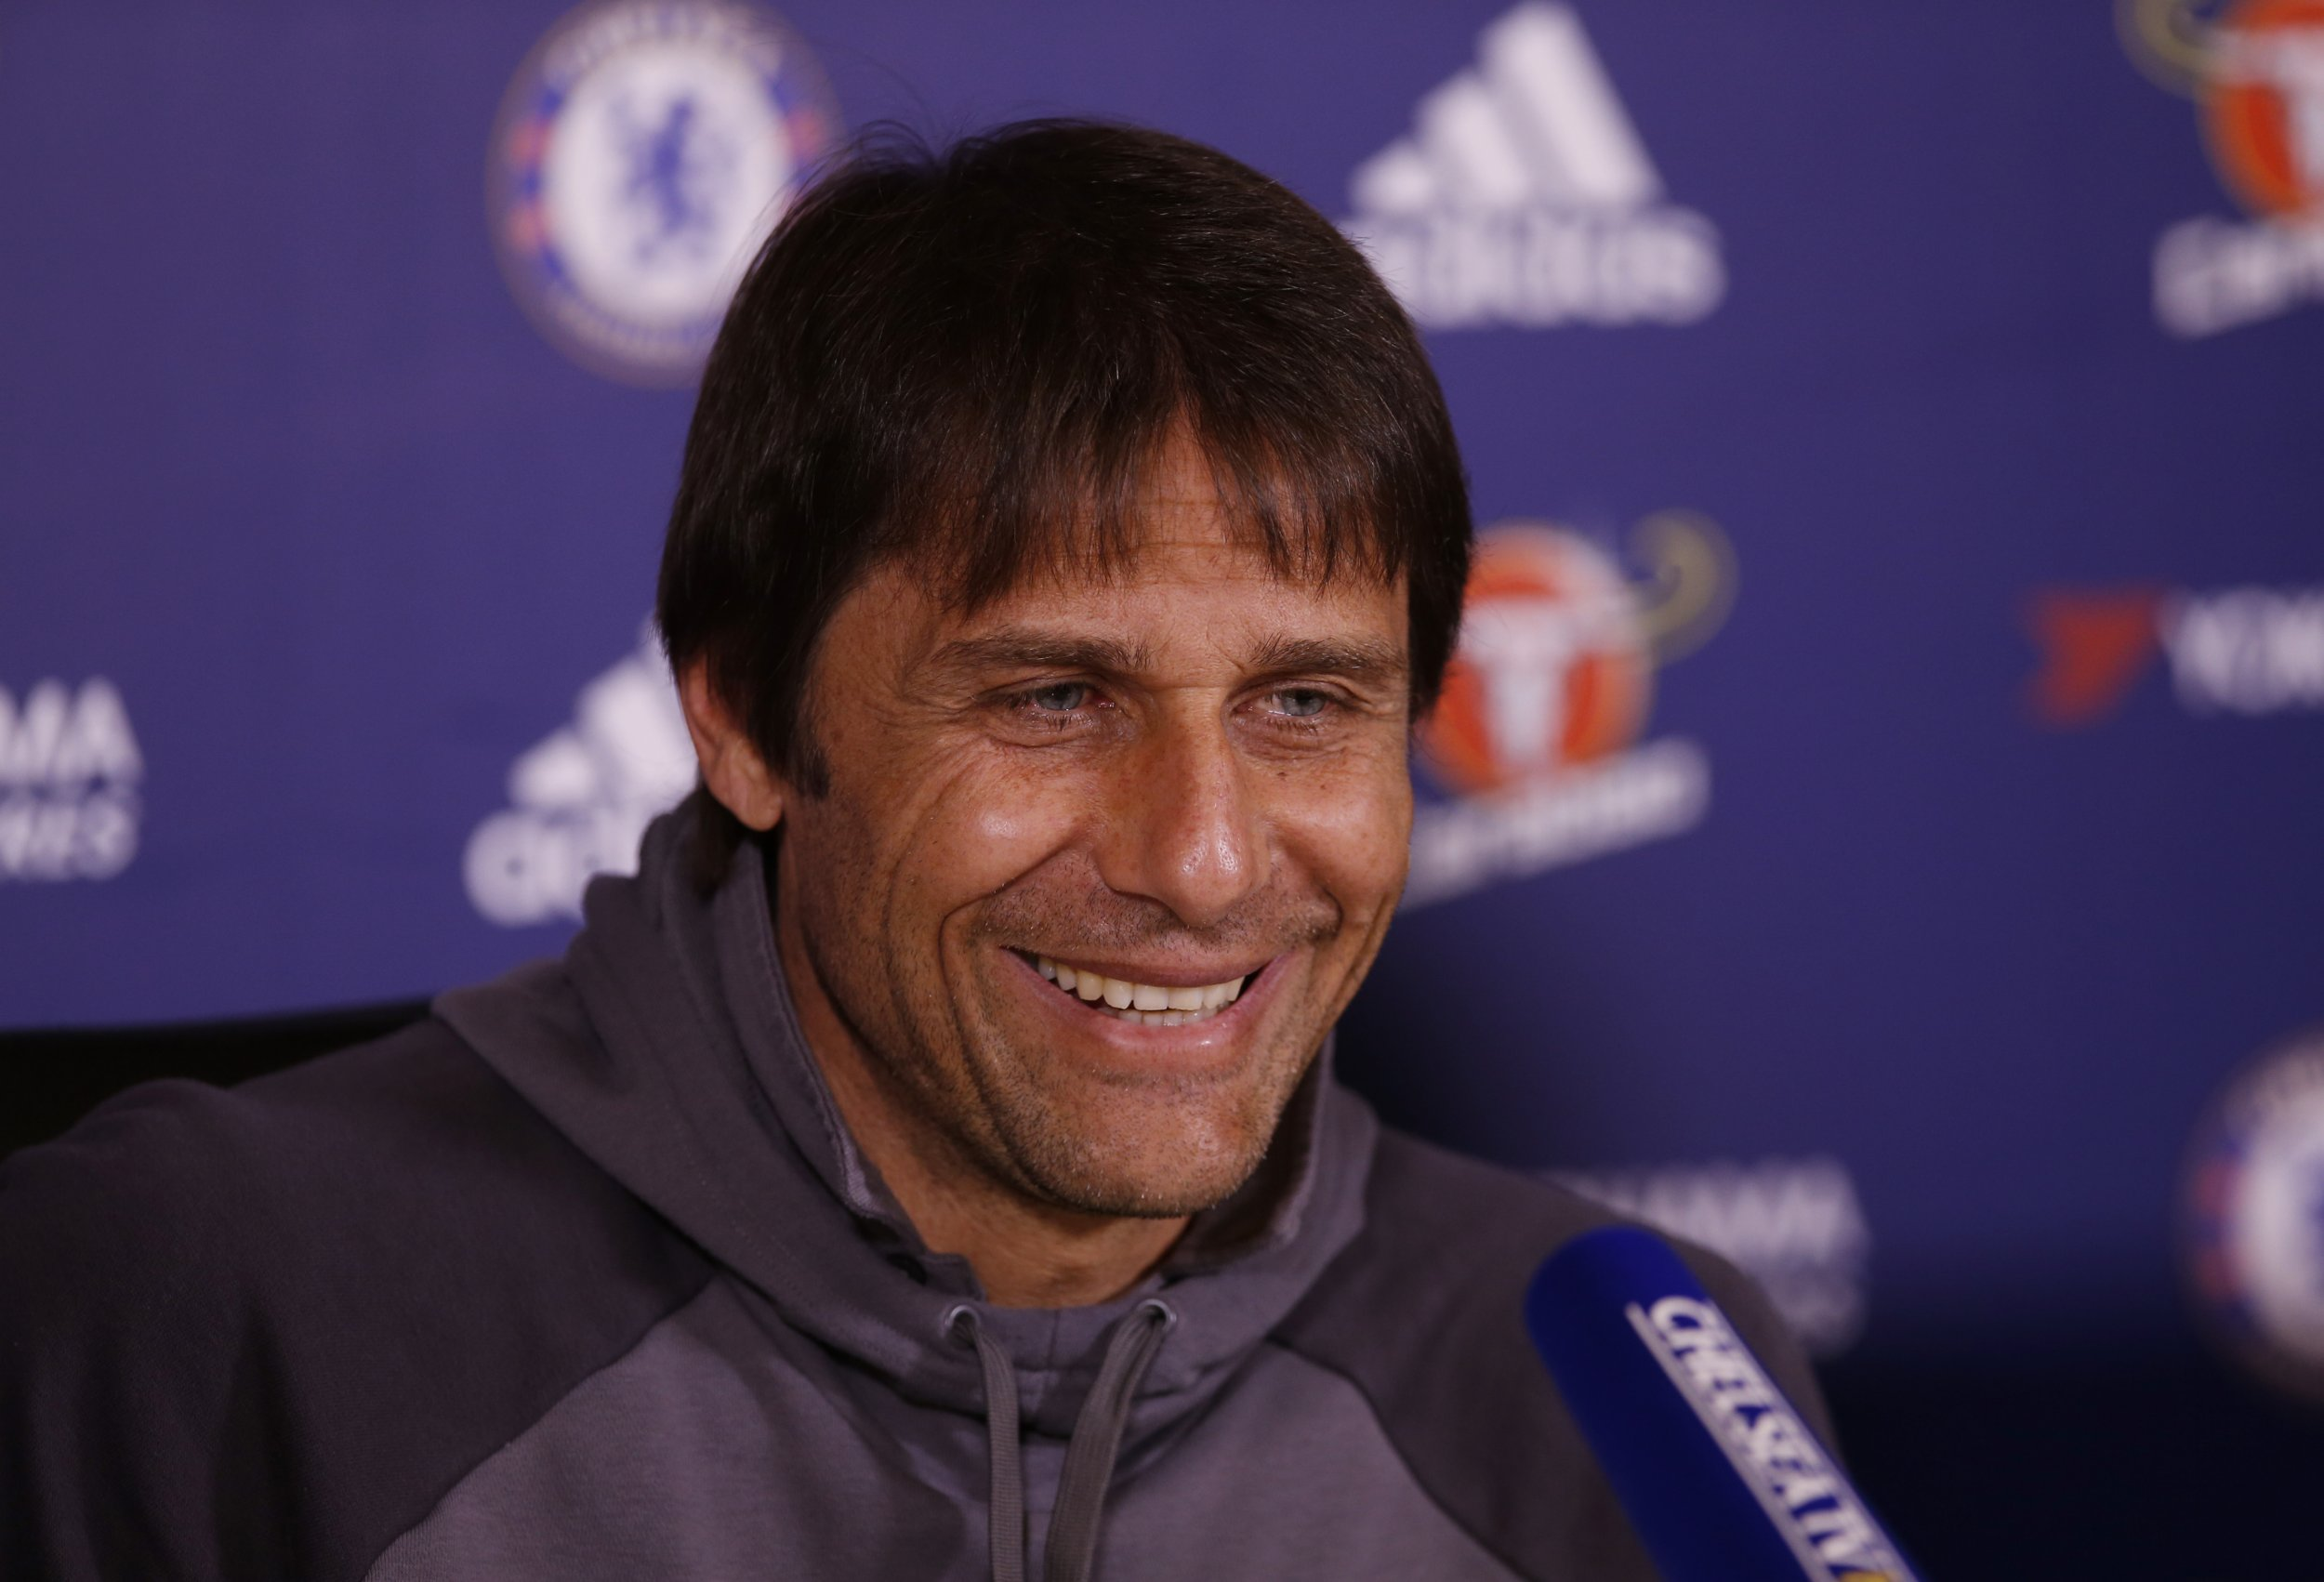 Antonio Conte speaks out amid Andrea Pirlo to Chelsea speculation